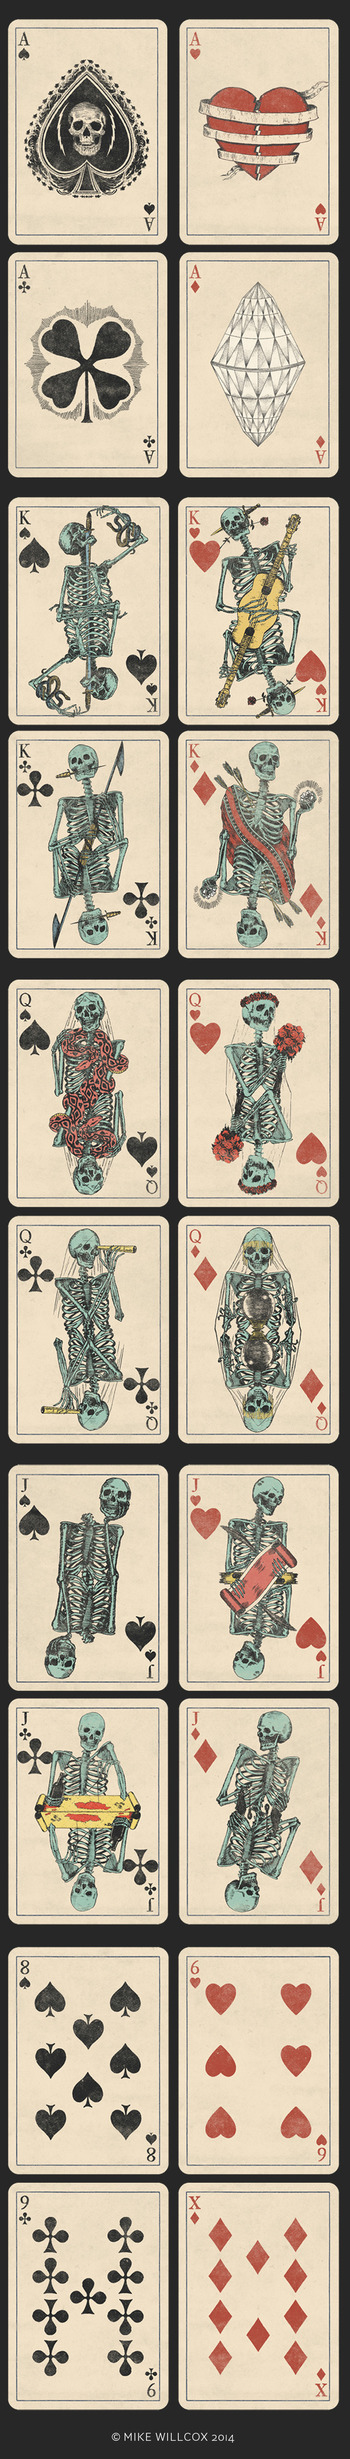 A Deck of Skeletons. Vintage Playing Cards.